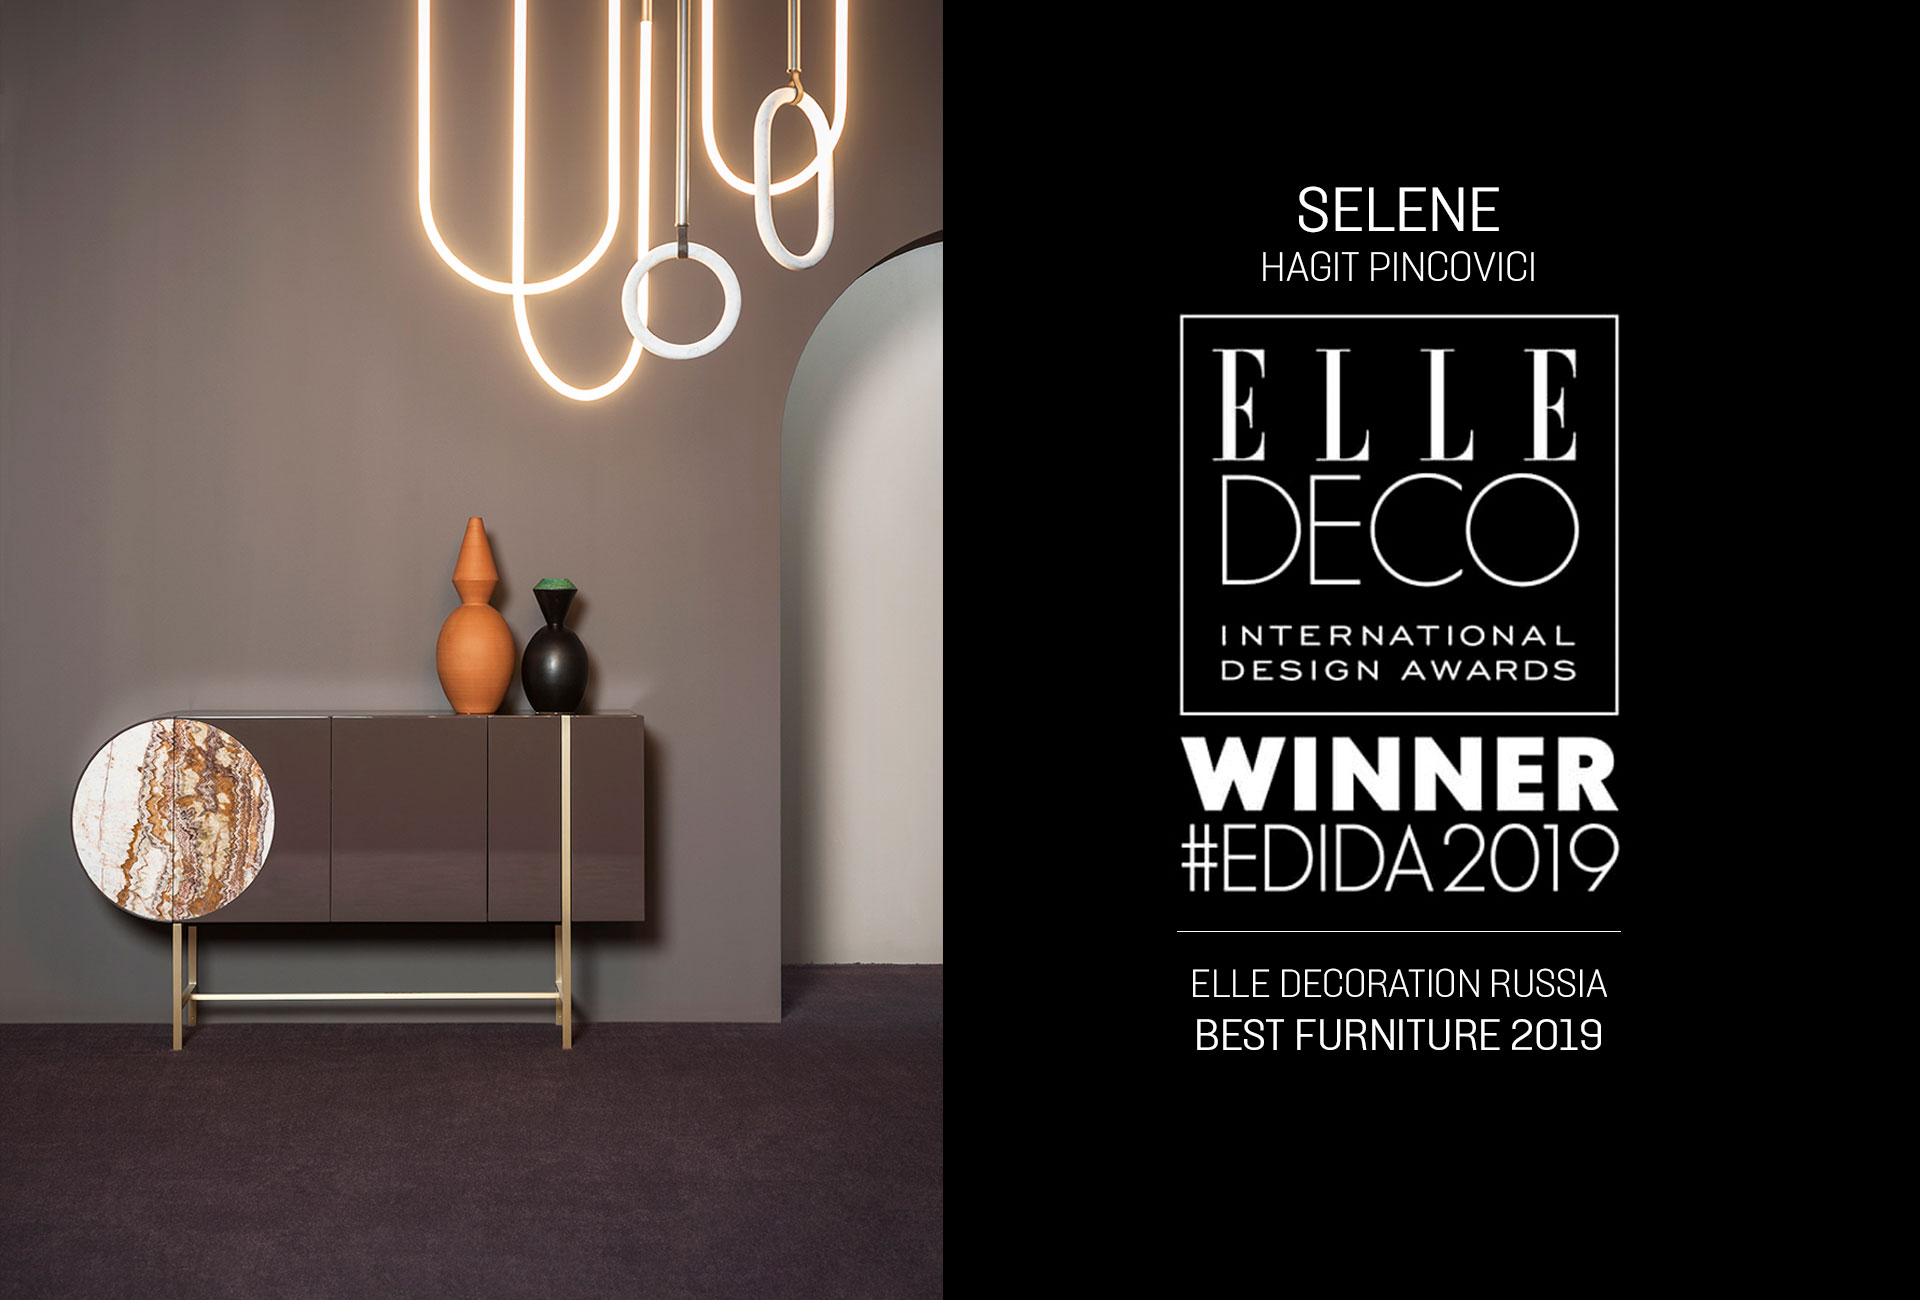 SELENE – ELLE DECORATION BEST FURNITURE 2019